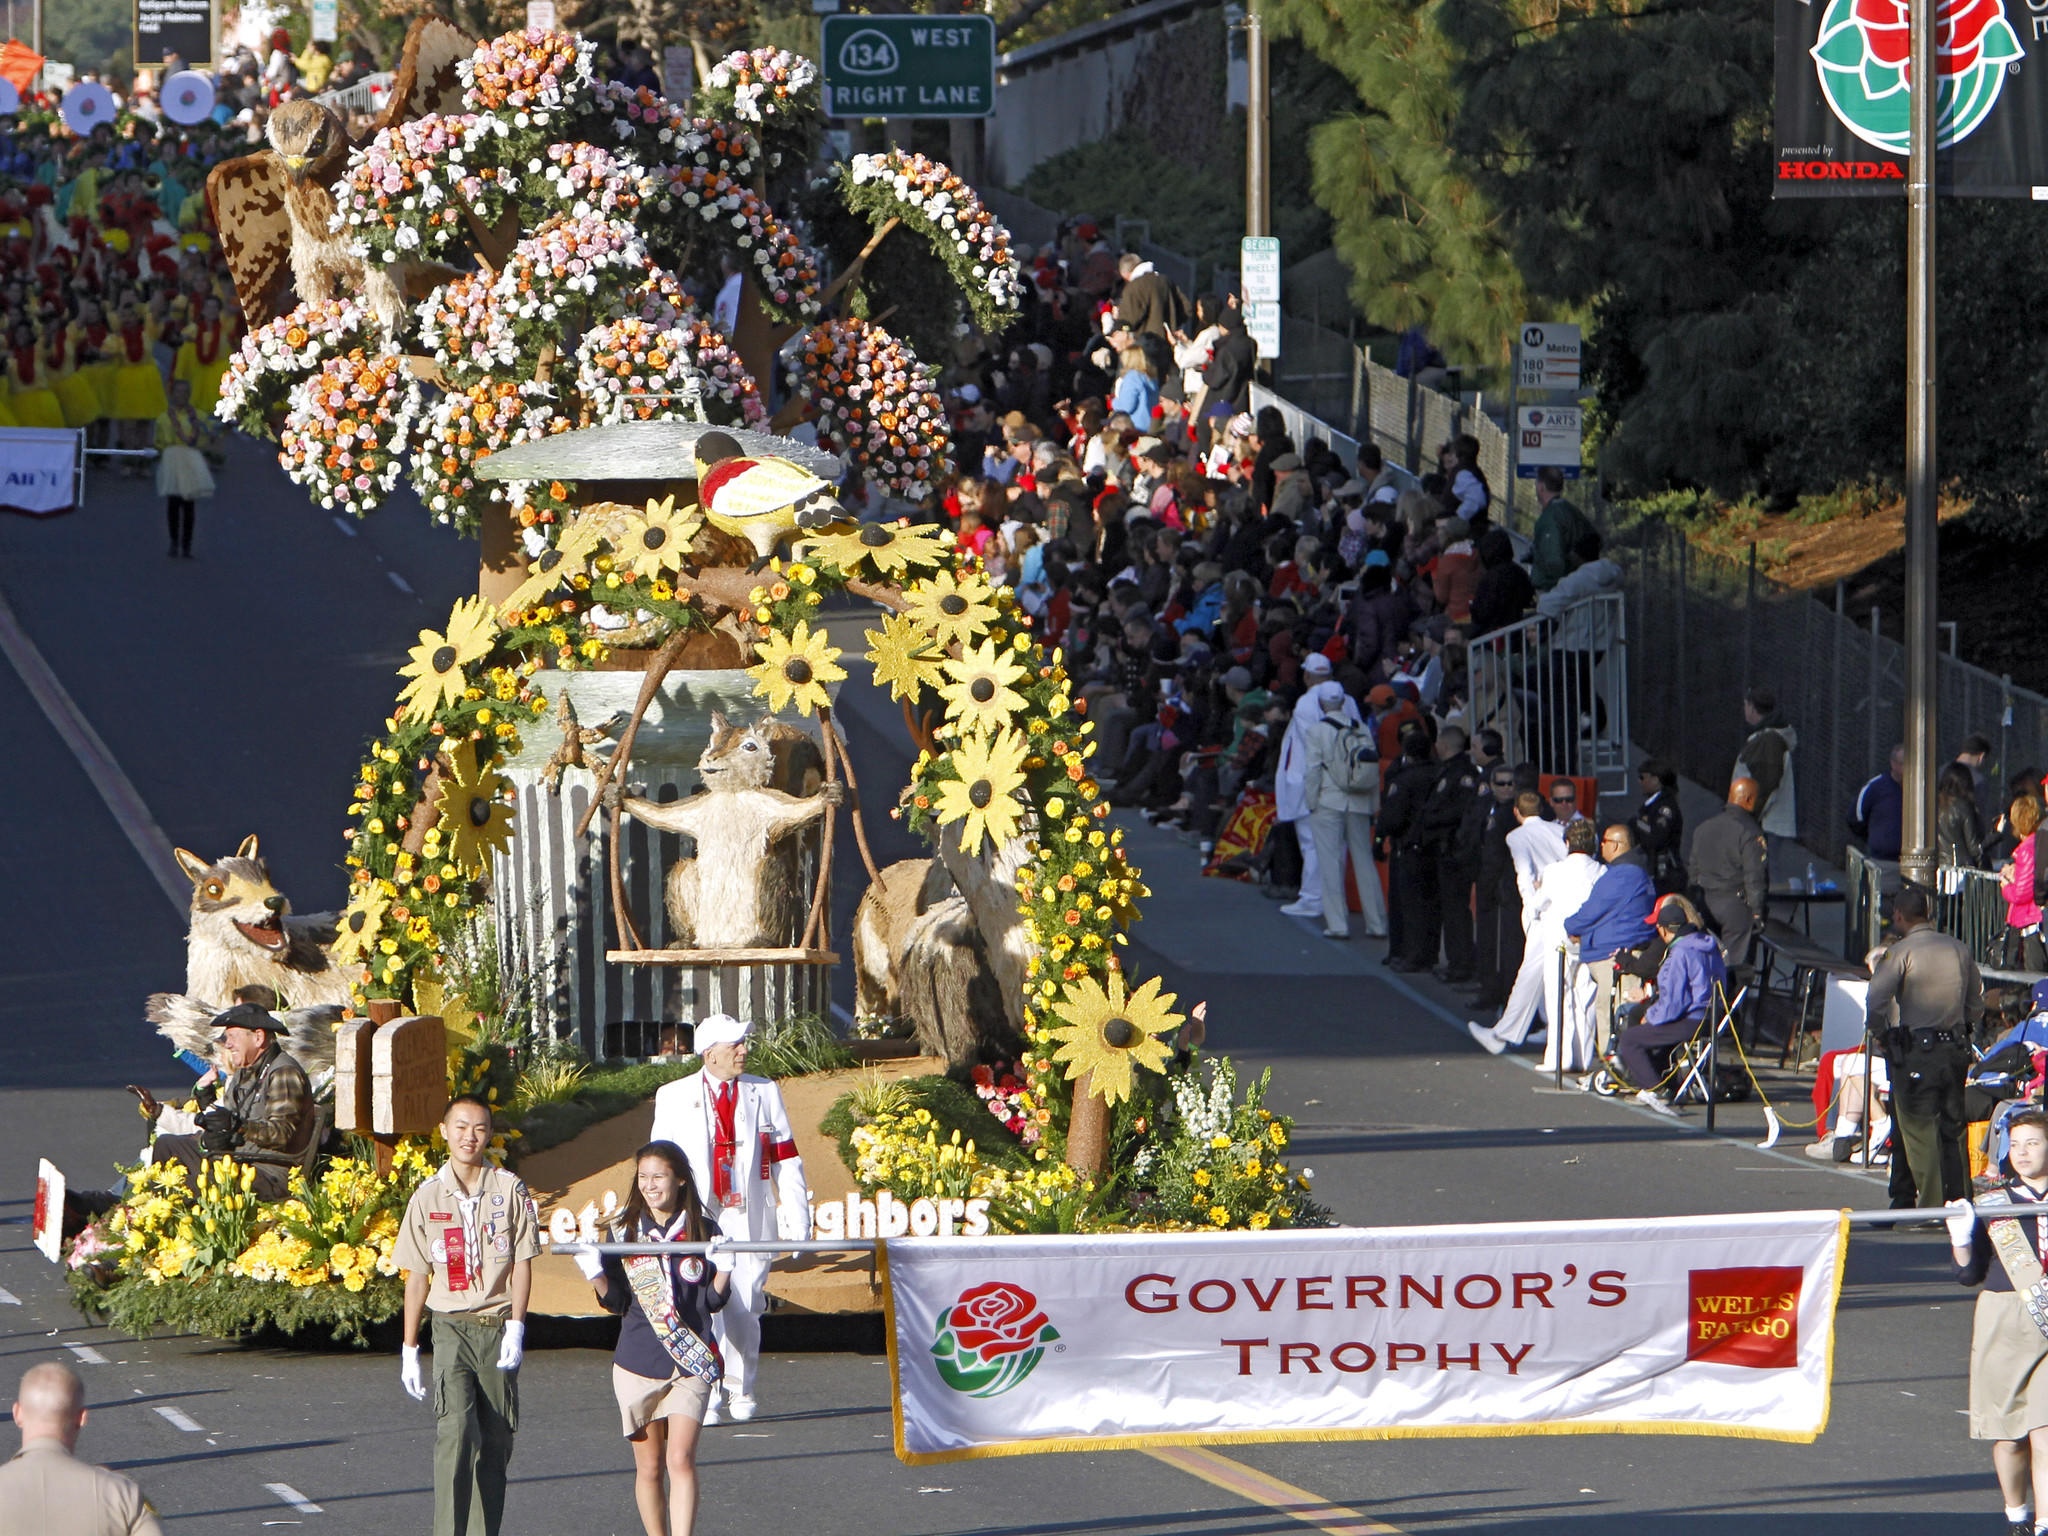 "The Glendale float ""Let's be neighbors"" featuring Meatball the bear, won the Governor's Award for best depiction of life in California at the Rose Parade in Pasadena on Wednesday, January 1, 2014."